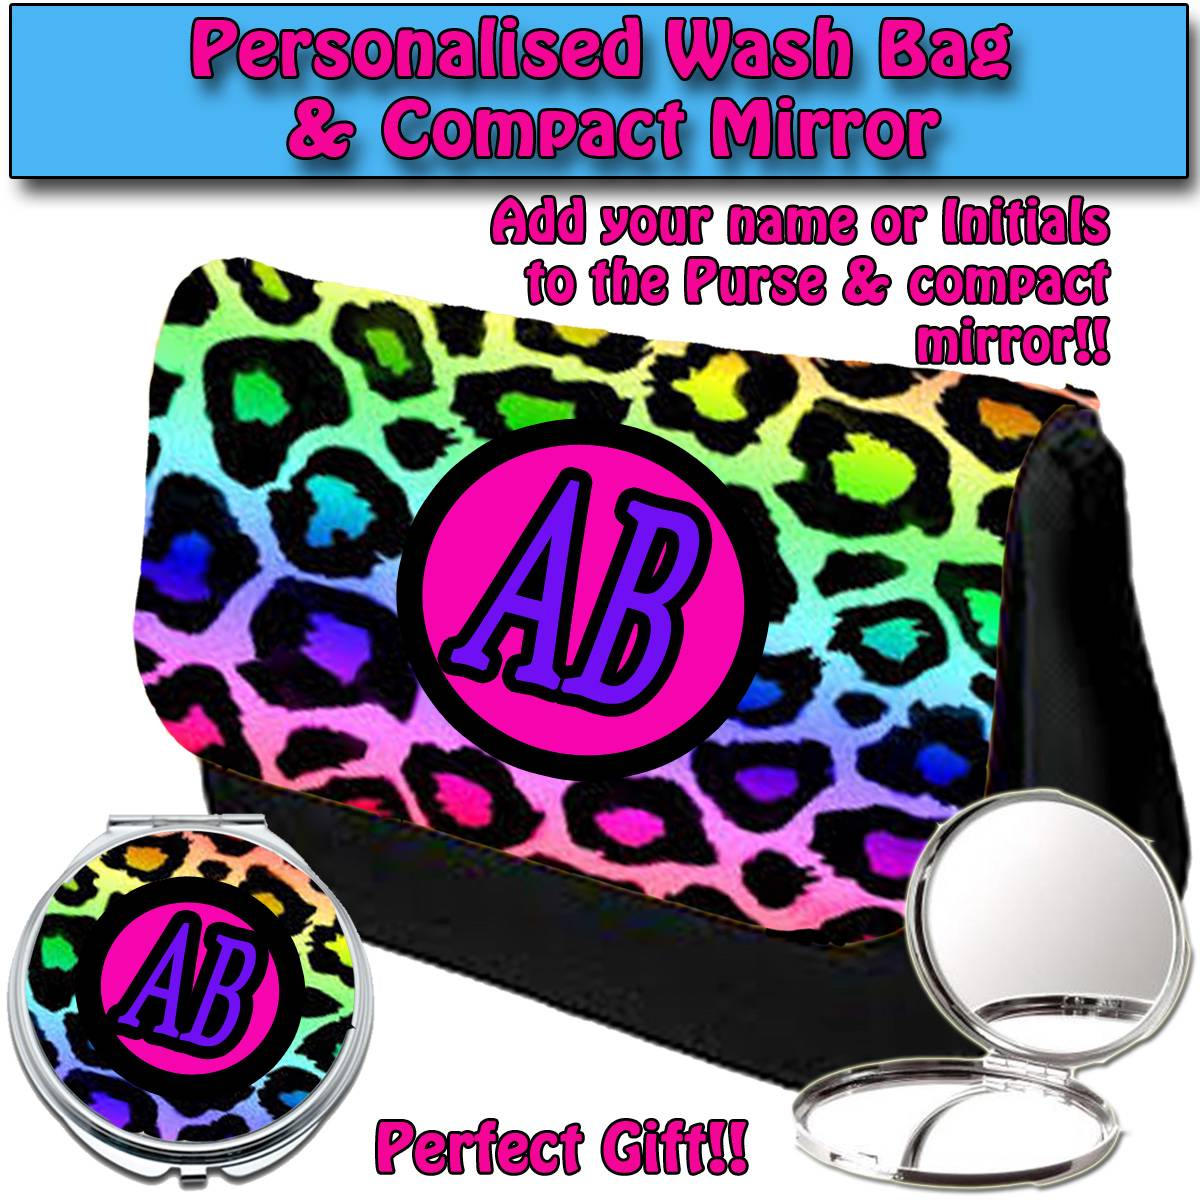 PERSONALISED-WOMEN-RAINBOW-LEOPARD-MAKE-UP-BAG-COMPACT-MIRROR-LADIES-GIFT-001